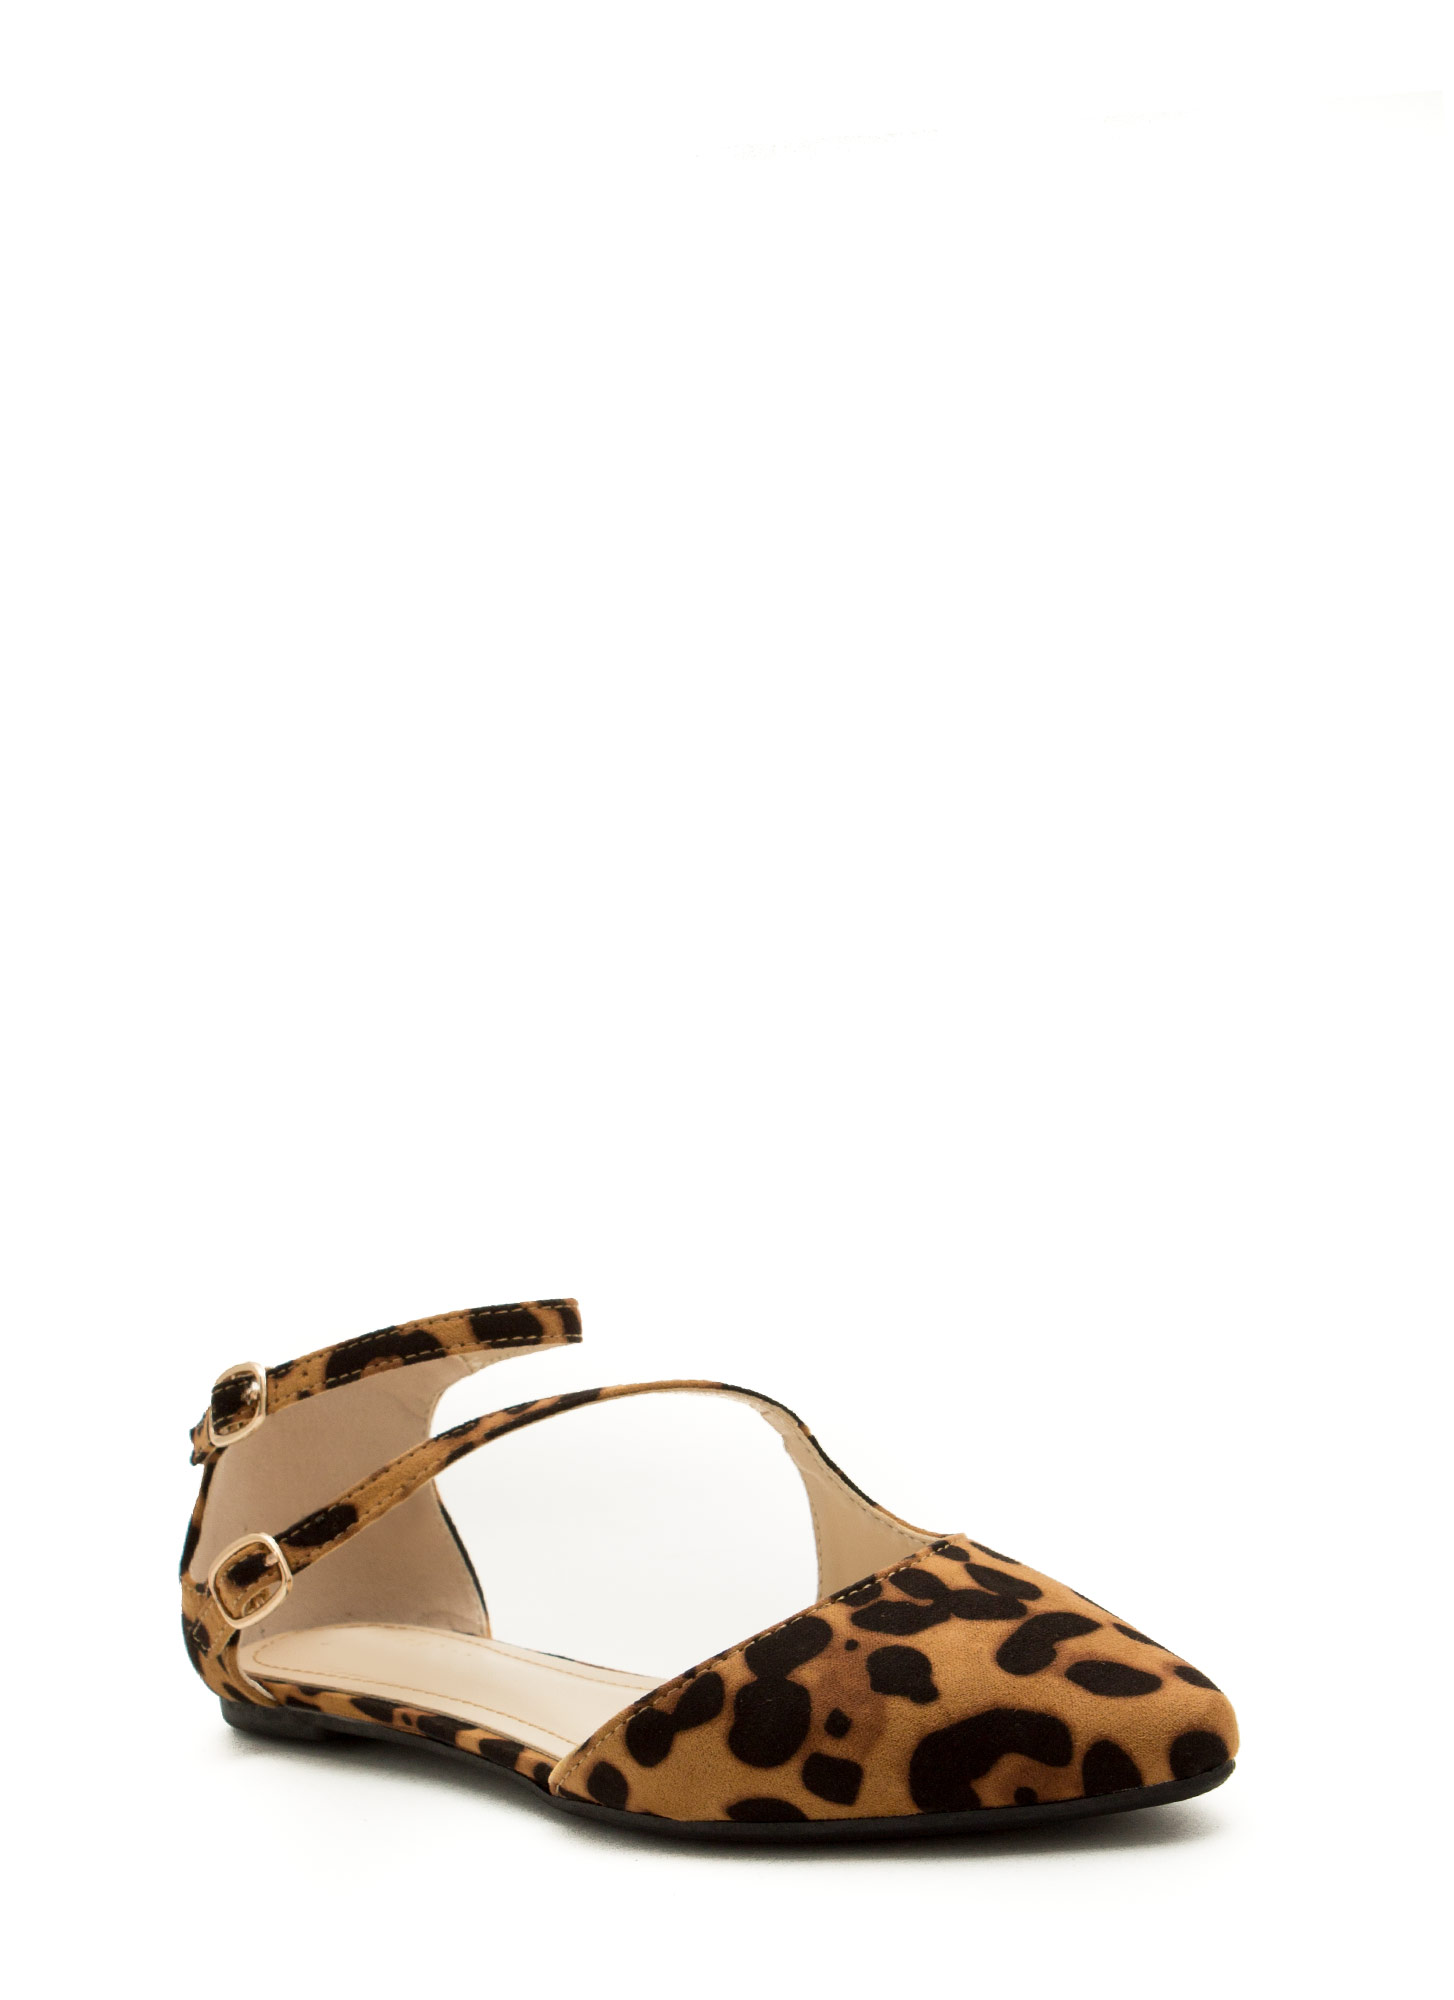 Double Buckle Cross Strap Flats LEOPARD